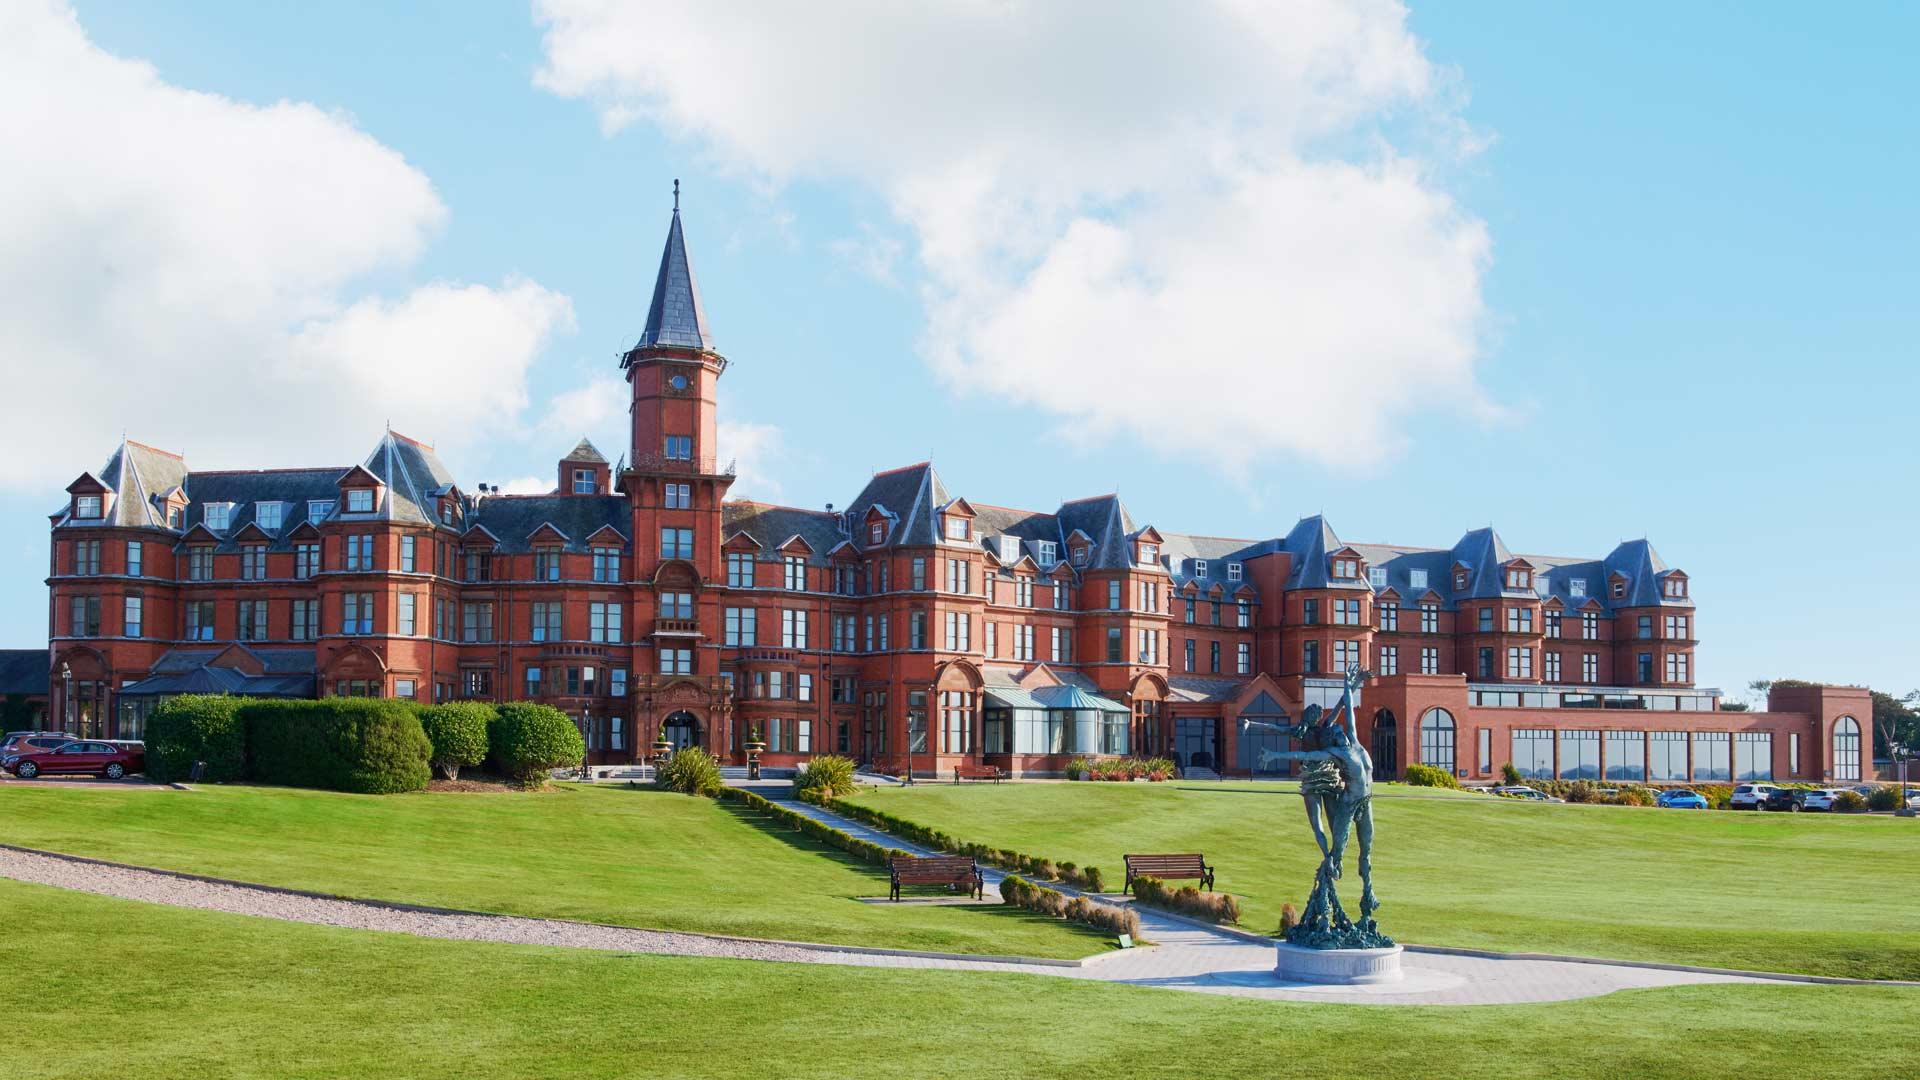 External view of the main resort building at Slieve Donard Hotel